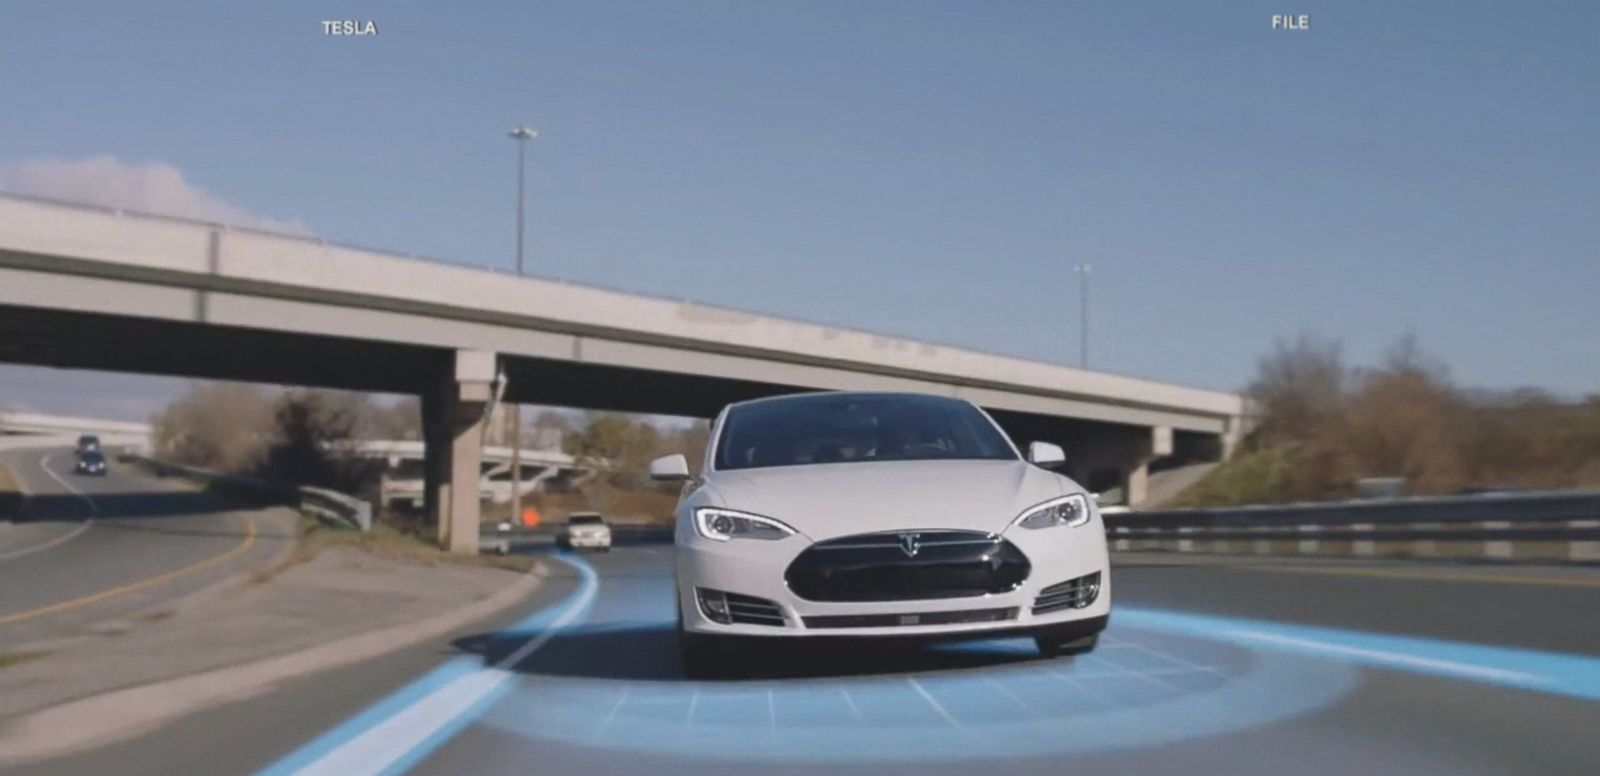 VIDEO: The Tesla driver was on a divided highway using autopilot when a tractor-trailer drove across the highway perpendicular to the Model S, according to a statement released today by the company.